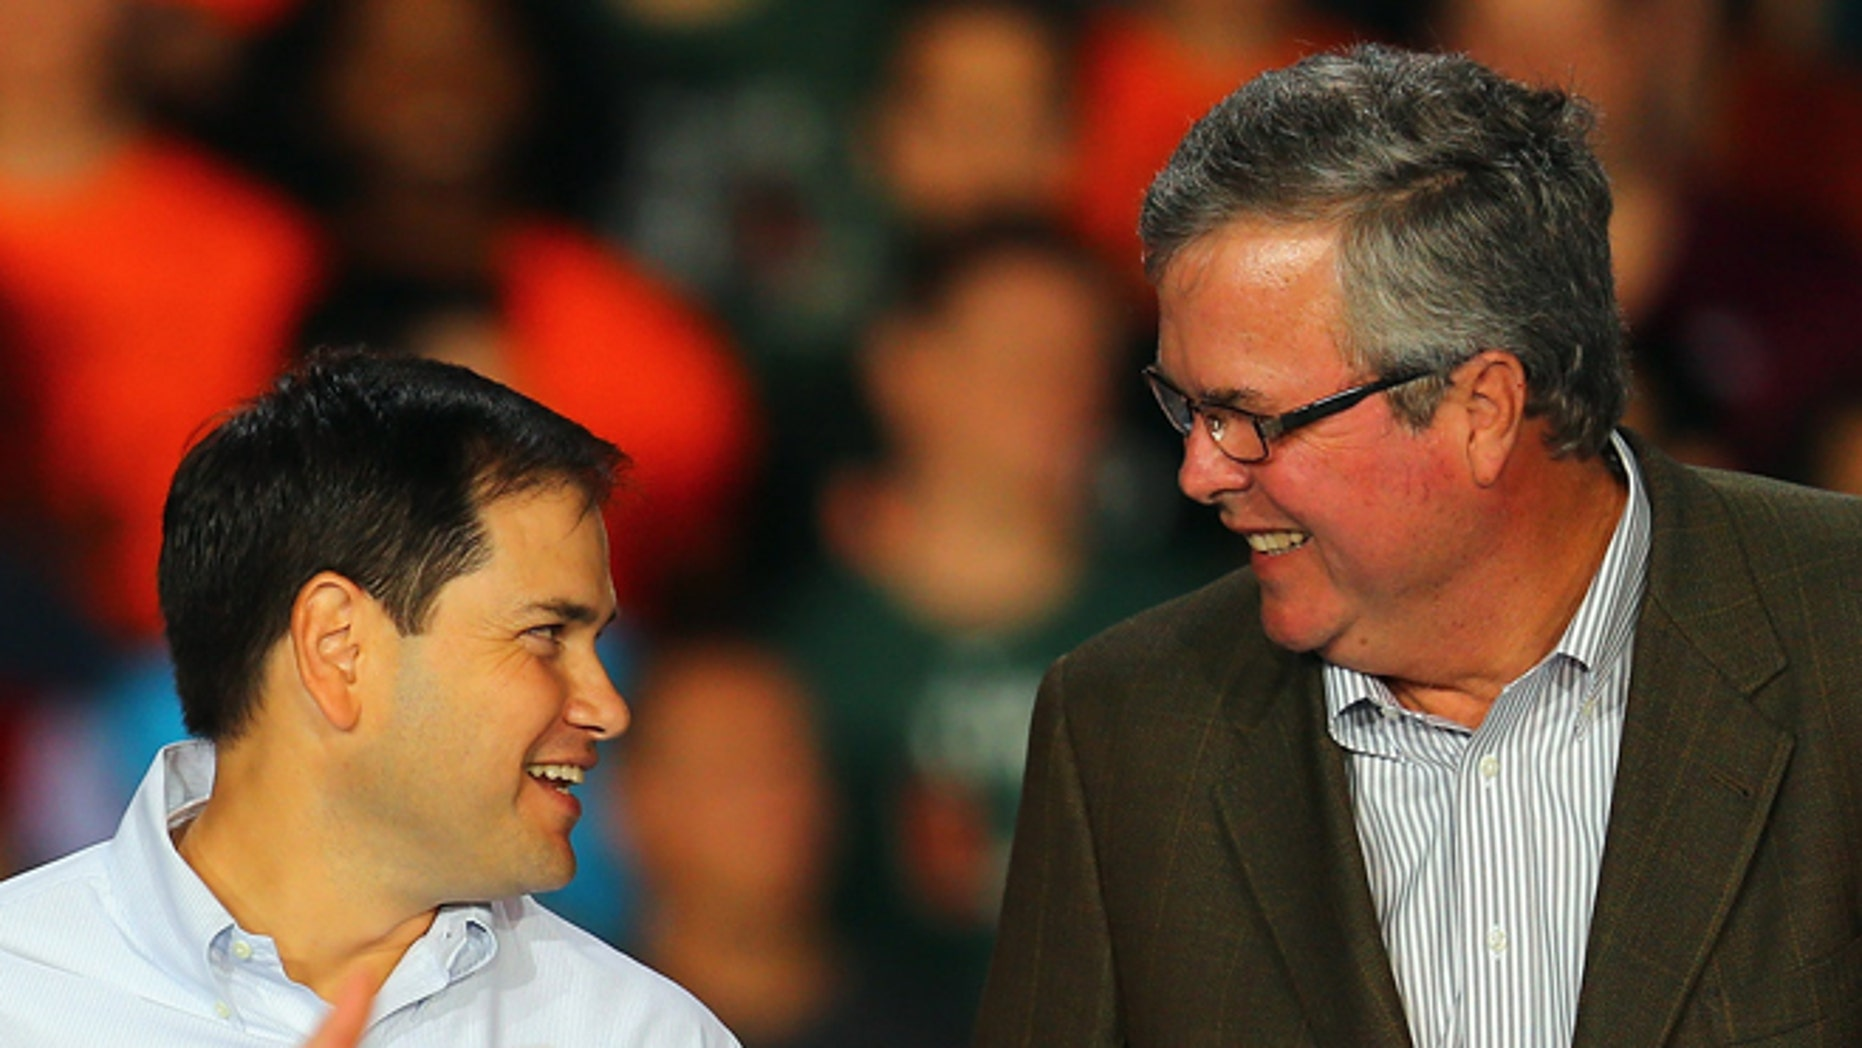 MIAMI, FL - OCTOBER 31:  Republican presidential candidate, former Massachusetts Gov. Mitt Romney speaks as Sen. Marco Rubio (R-FL) (C) and former Florida Gov. Jeb Bush stand next to him during a campaign rally at the BankUnited Center on the campus of the University of Miami on October 31, 2012 in Miami, Florida. In the wake of Hurricane Sandy which hit the northeastern part of the United States, Romney is back to campaigning before the general election on November 6.  (Photo by Joe Raedle/Getty Images)